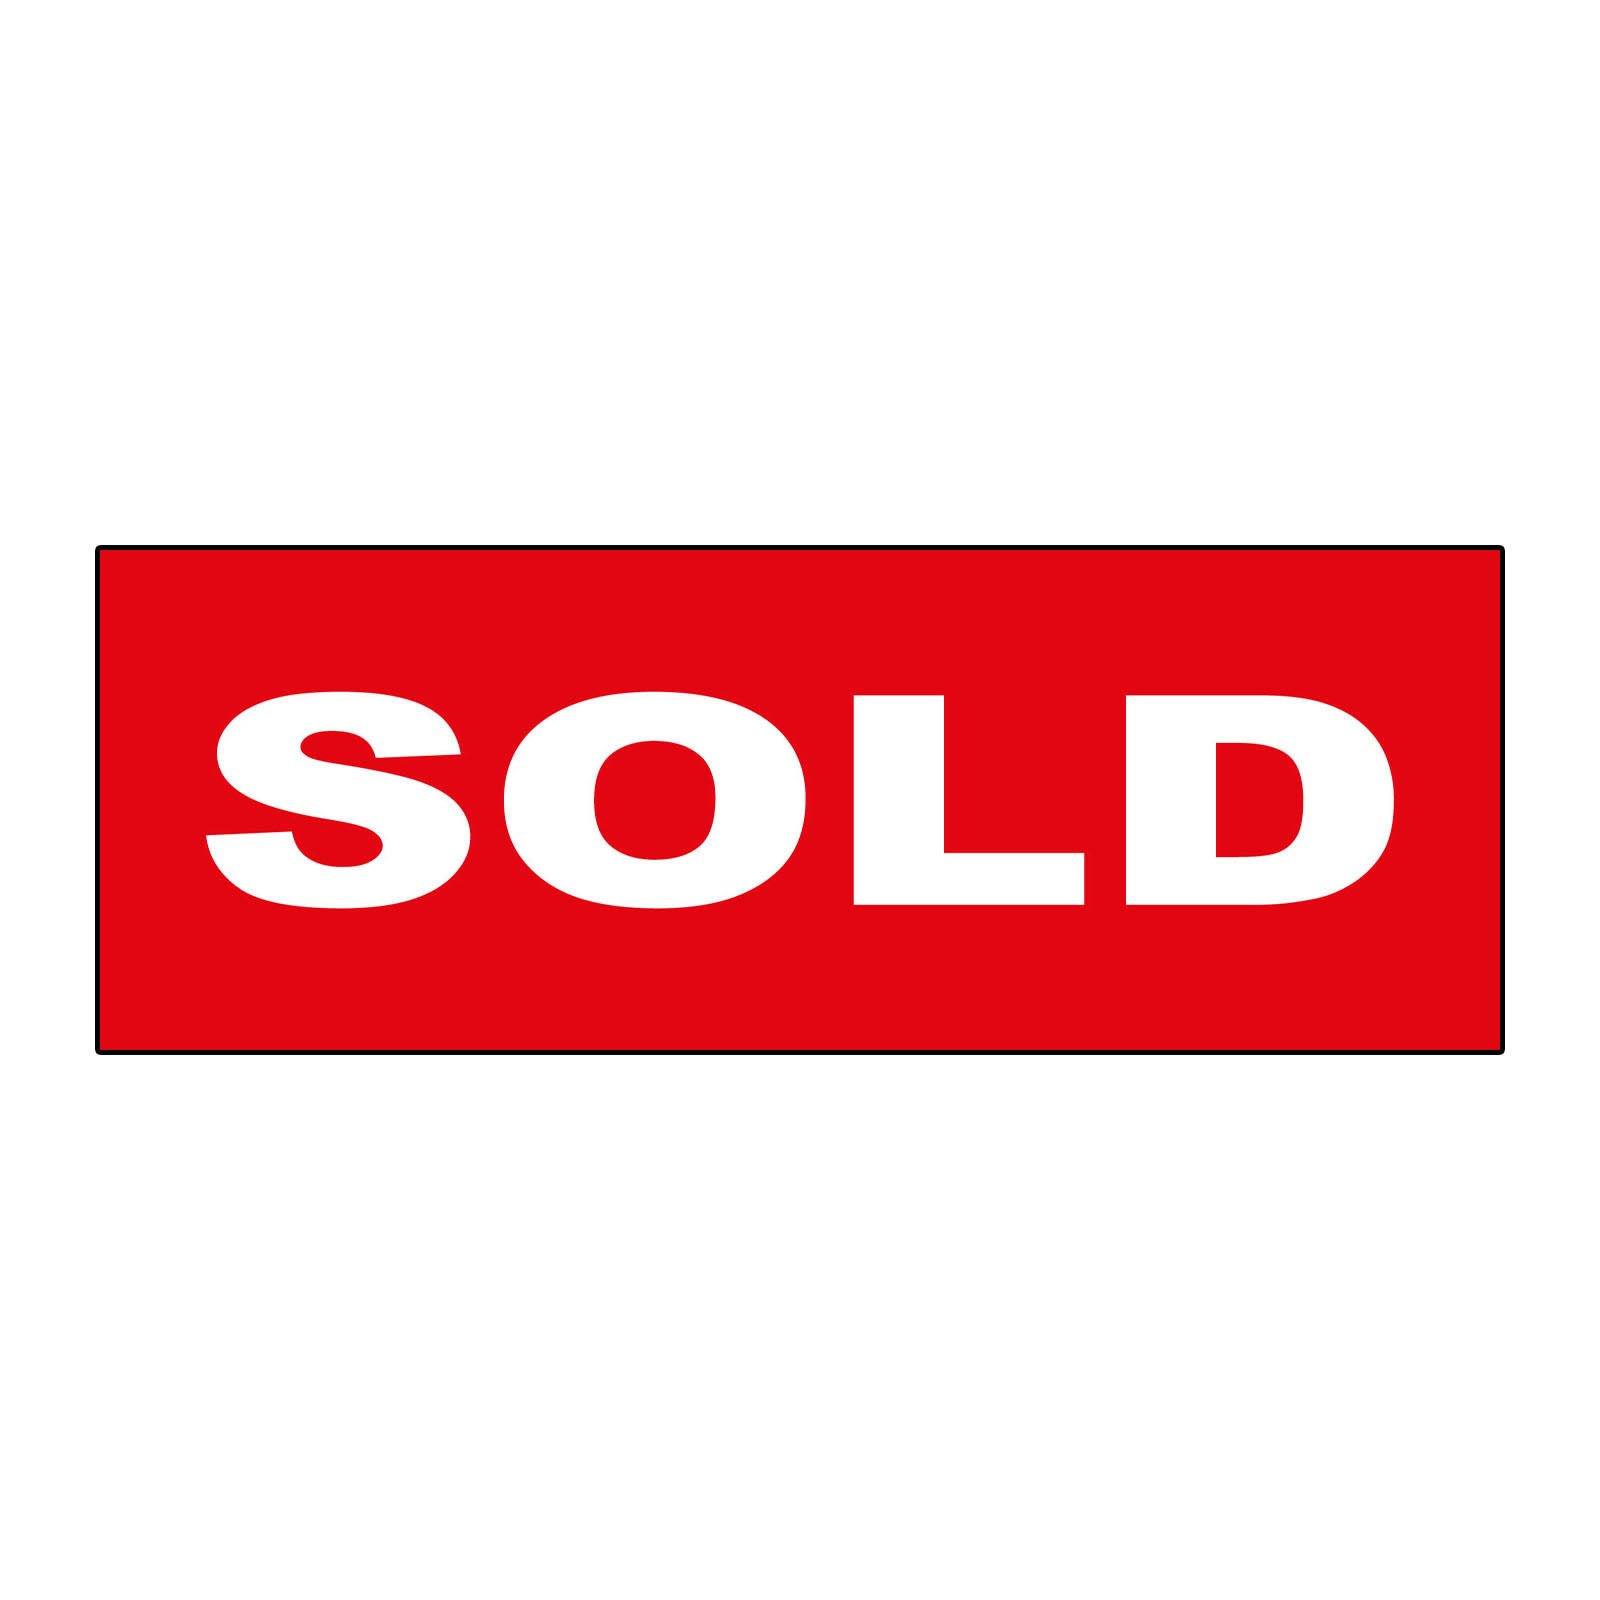 Sold Red Durable LABEL DECAL STICKER Sticks to Any Surface Real Estate Rider Sign - 1 or 2 Side Print 6x18